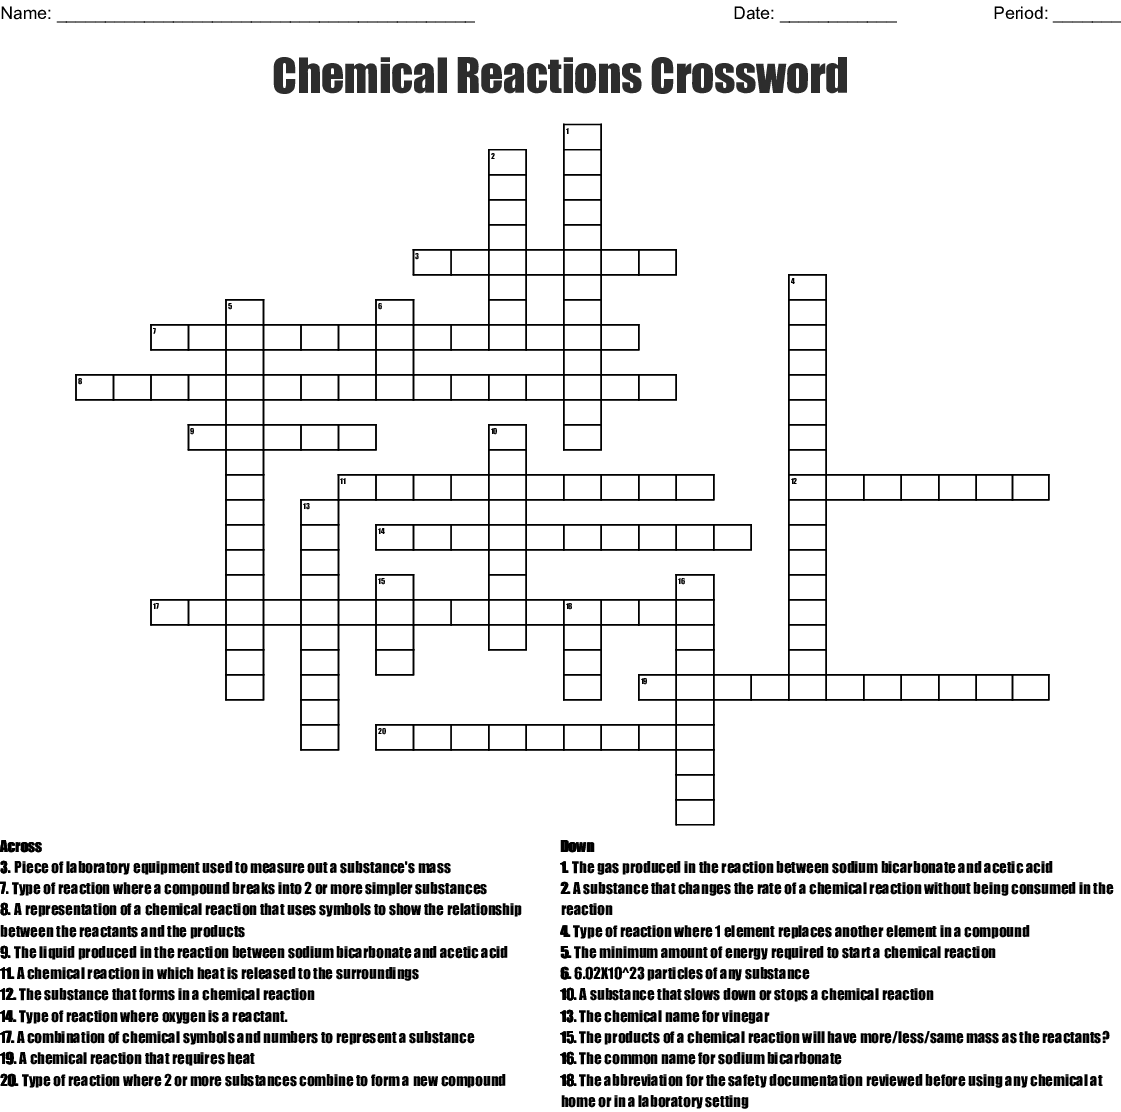 Chemical Reactions Crossword